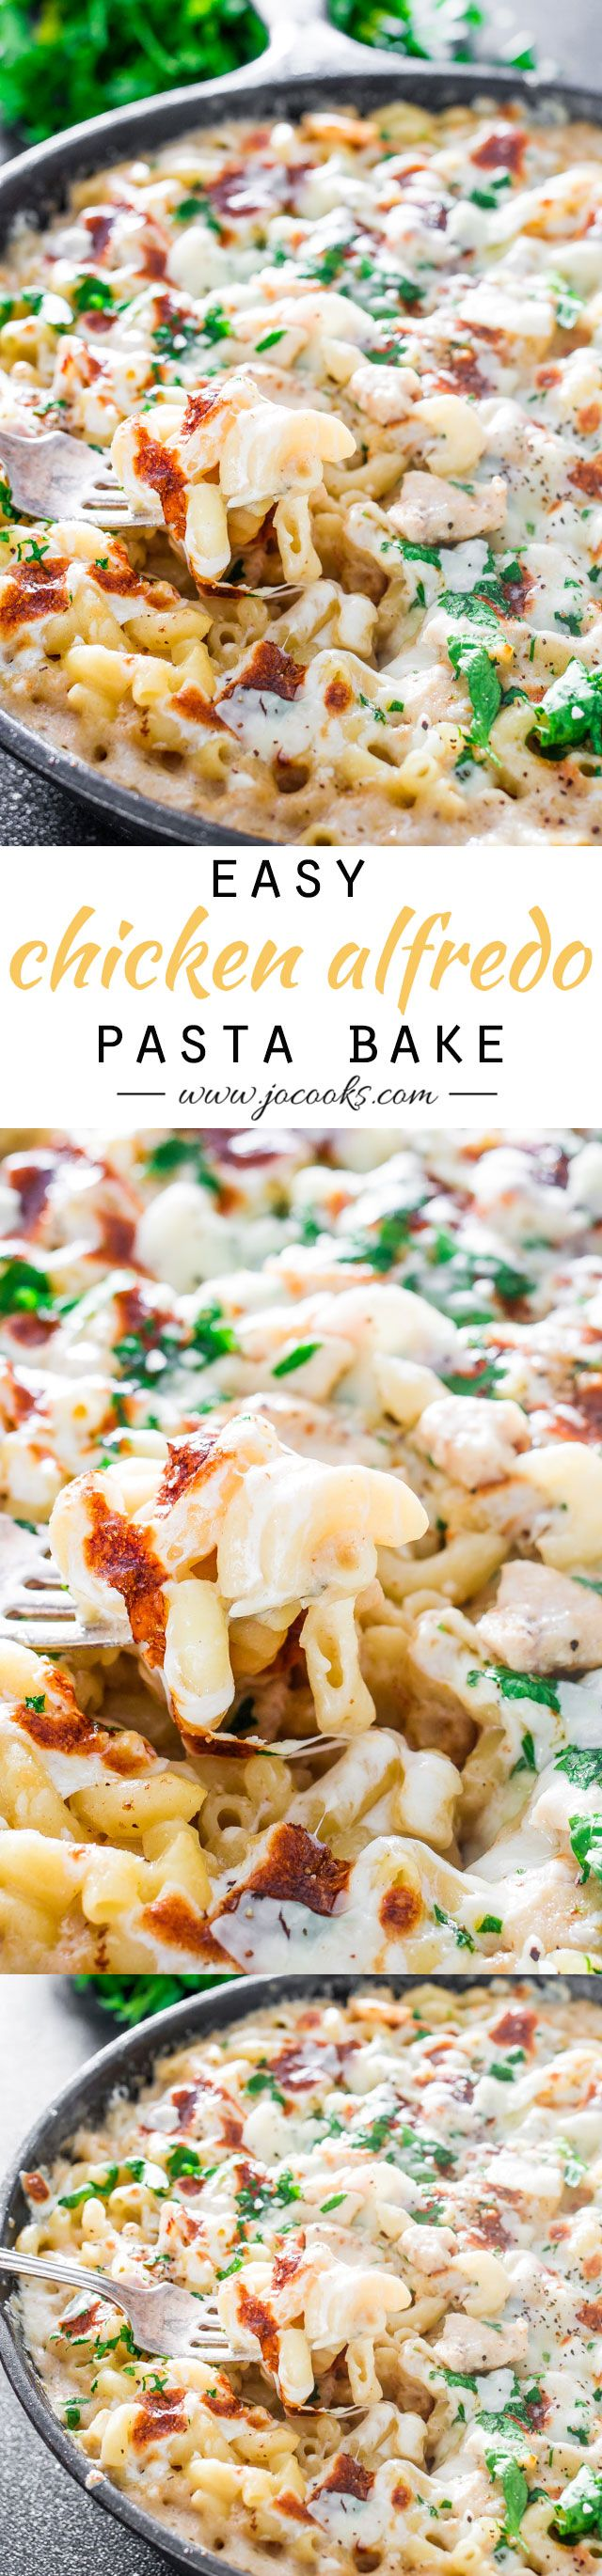 Easy Chicken Alfredo Pasta Bake